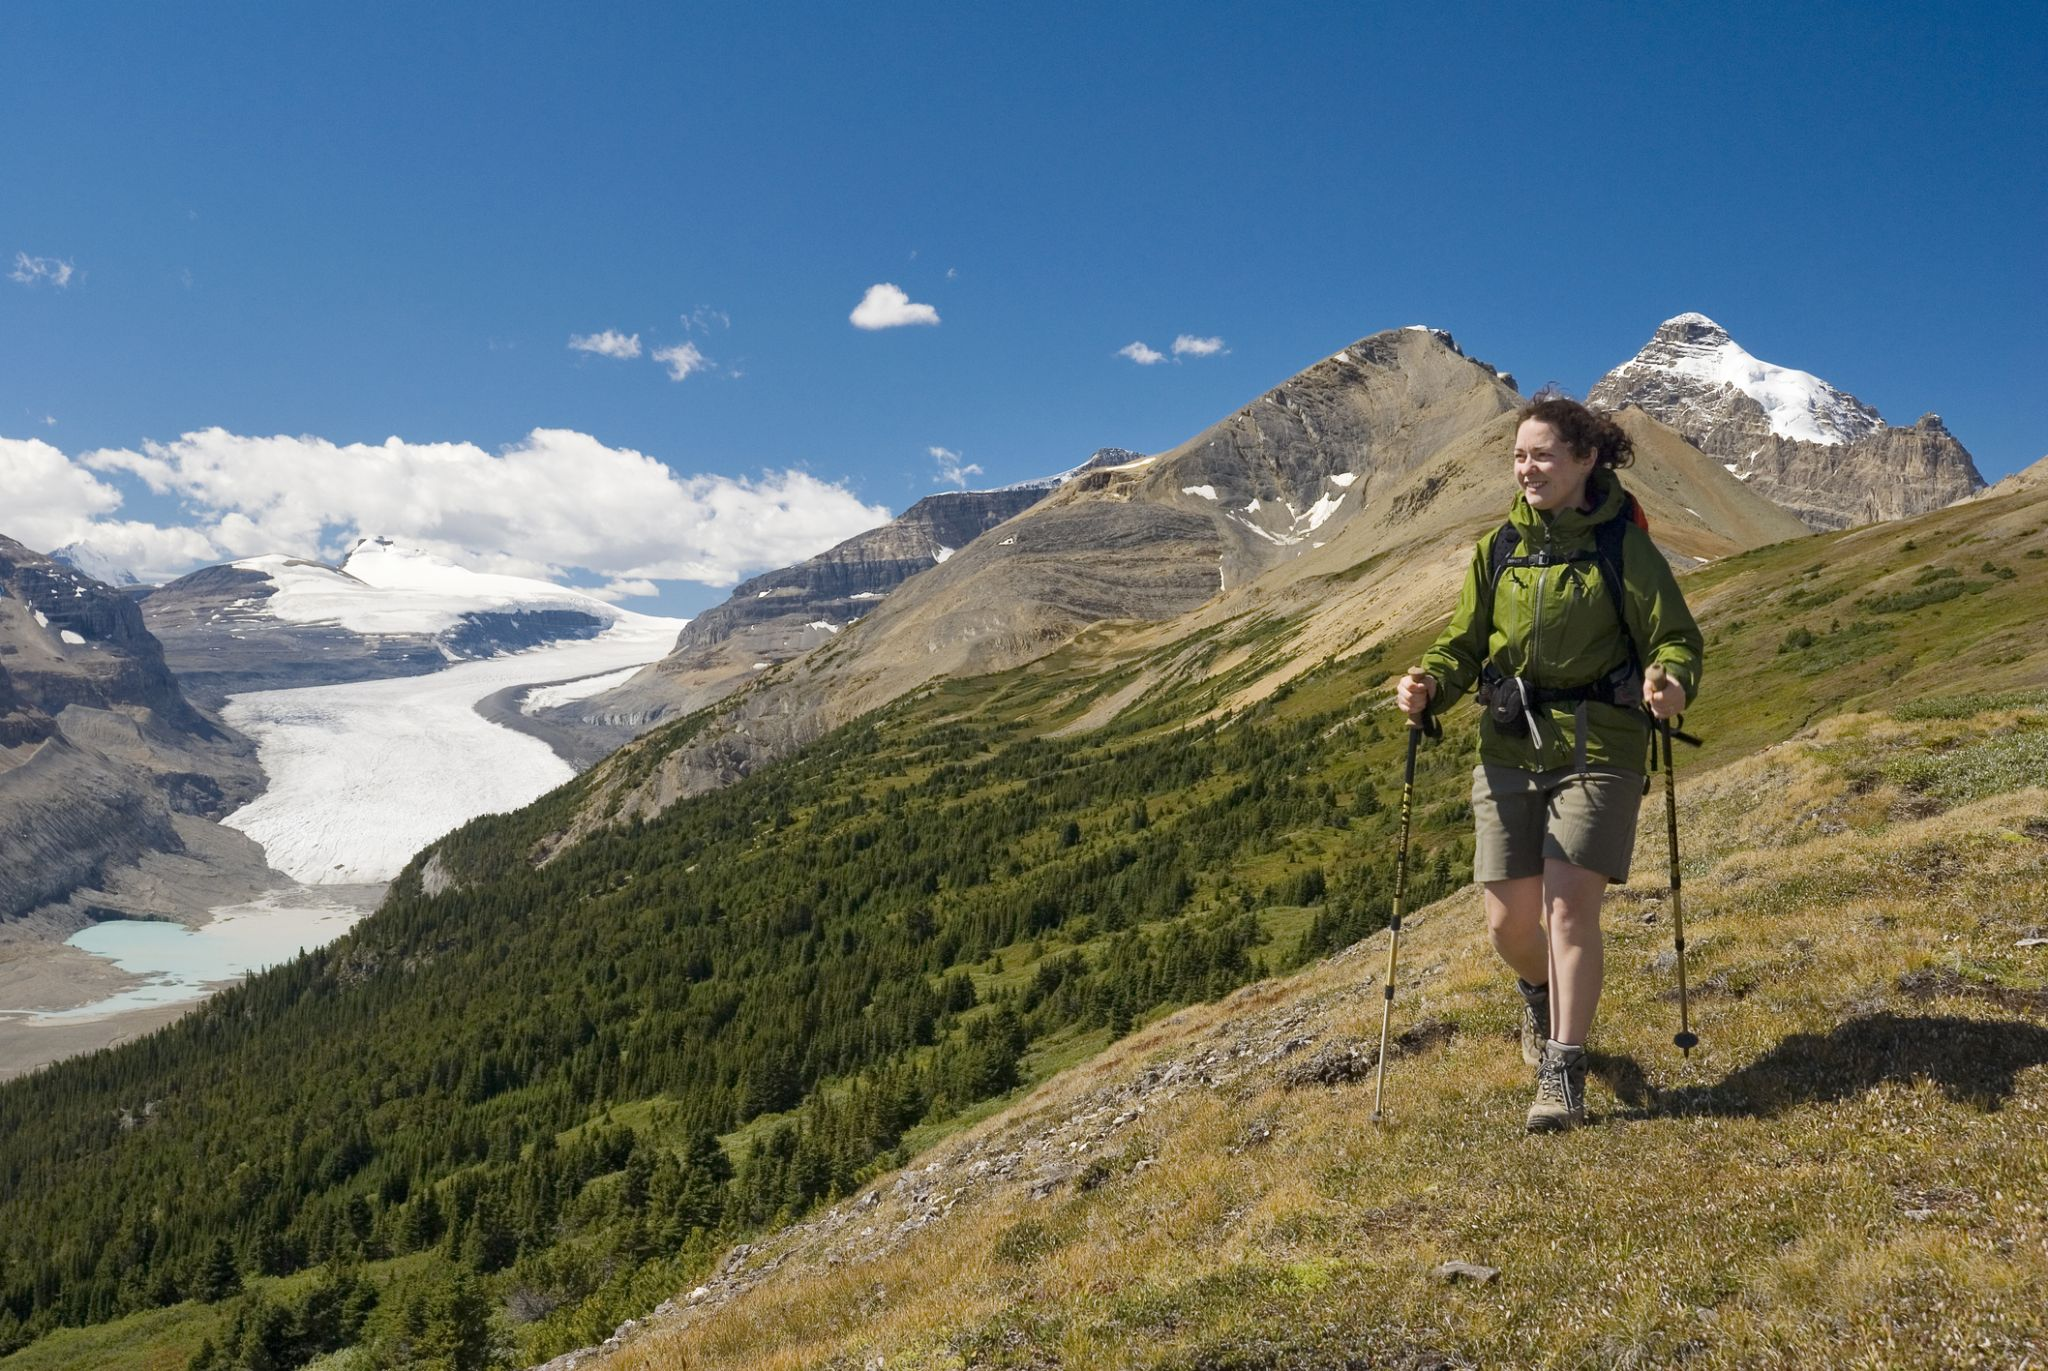 Road Trip: Canadian Rockies -- Columbia River to Columbia Icefield